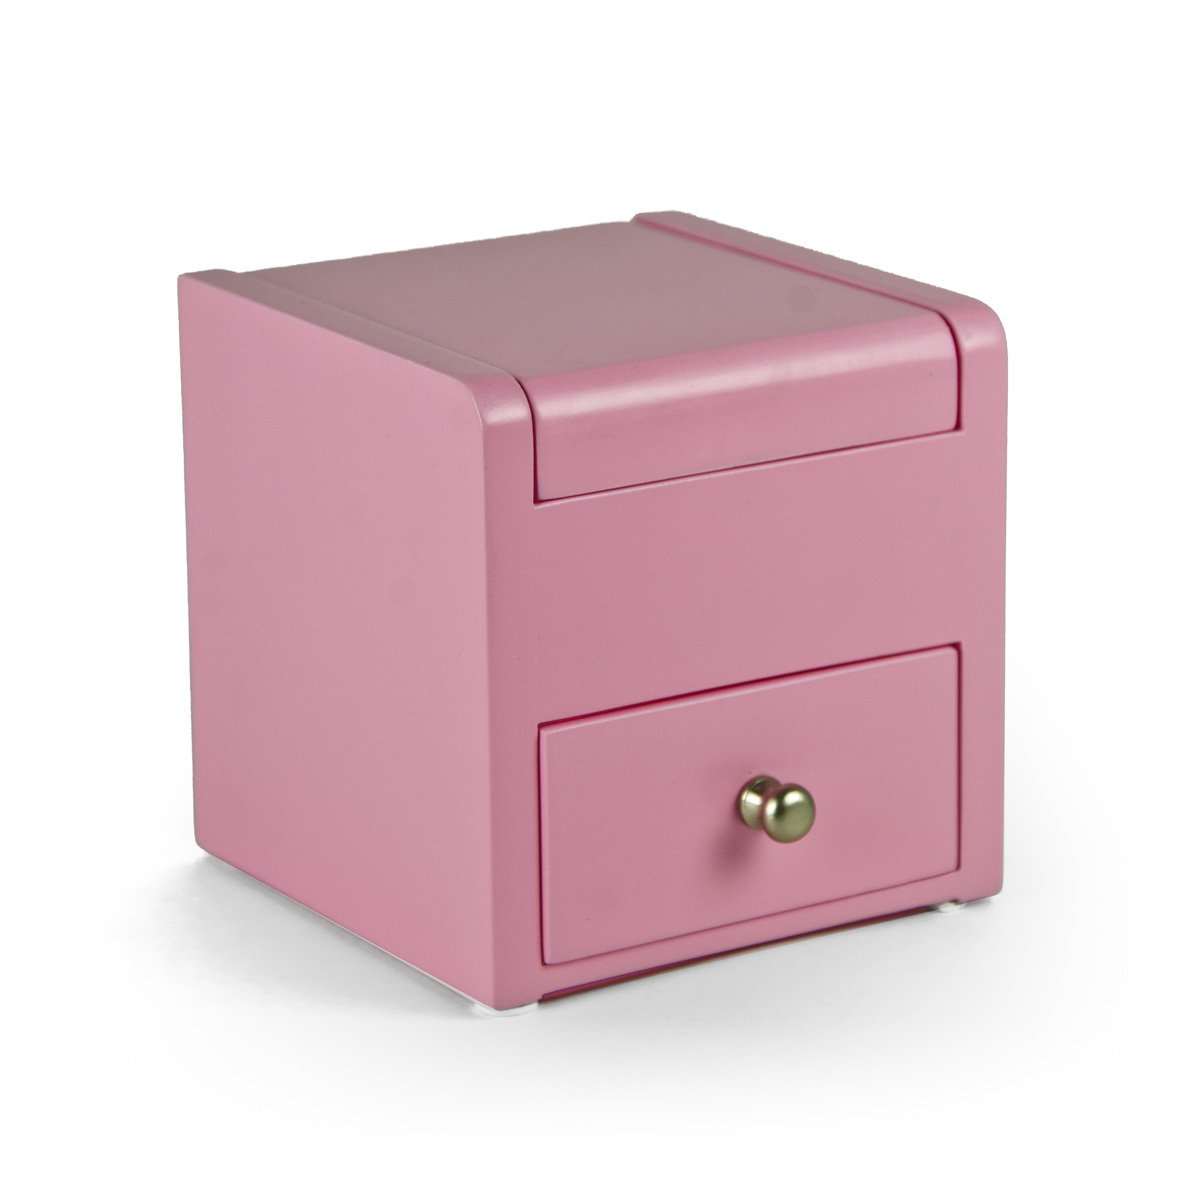 Matte Pink 18 Note Ballerina Musical Jewelry Box with Pull Out Drawer - Easy Song Selection